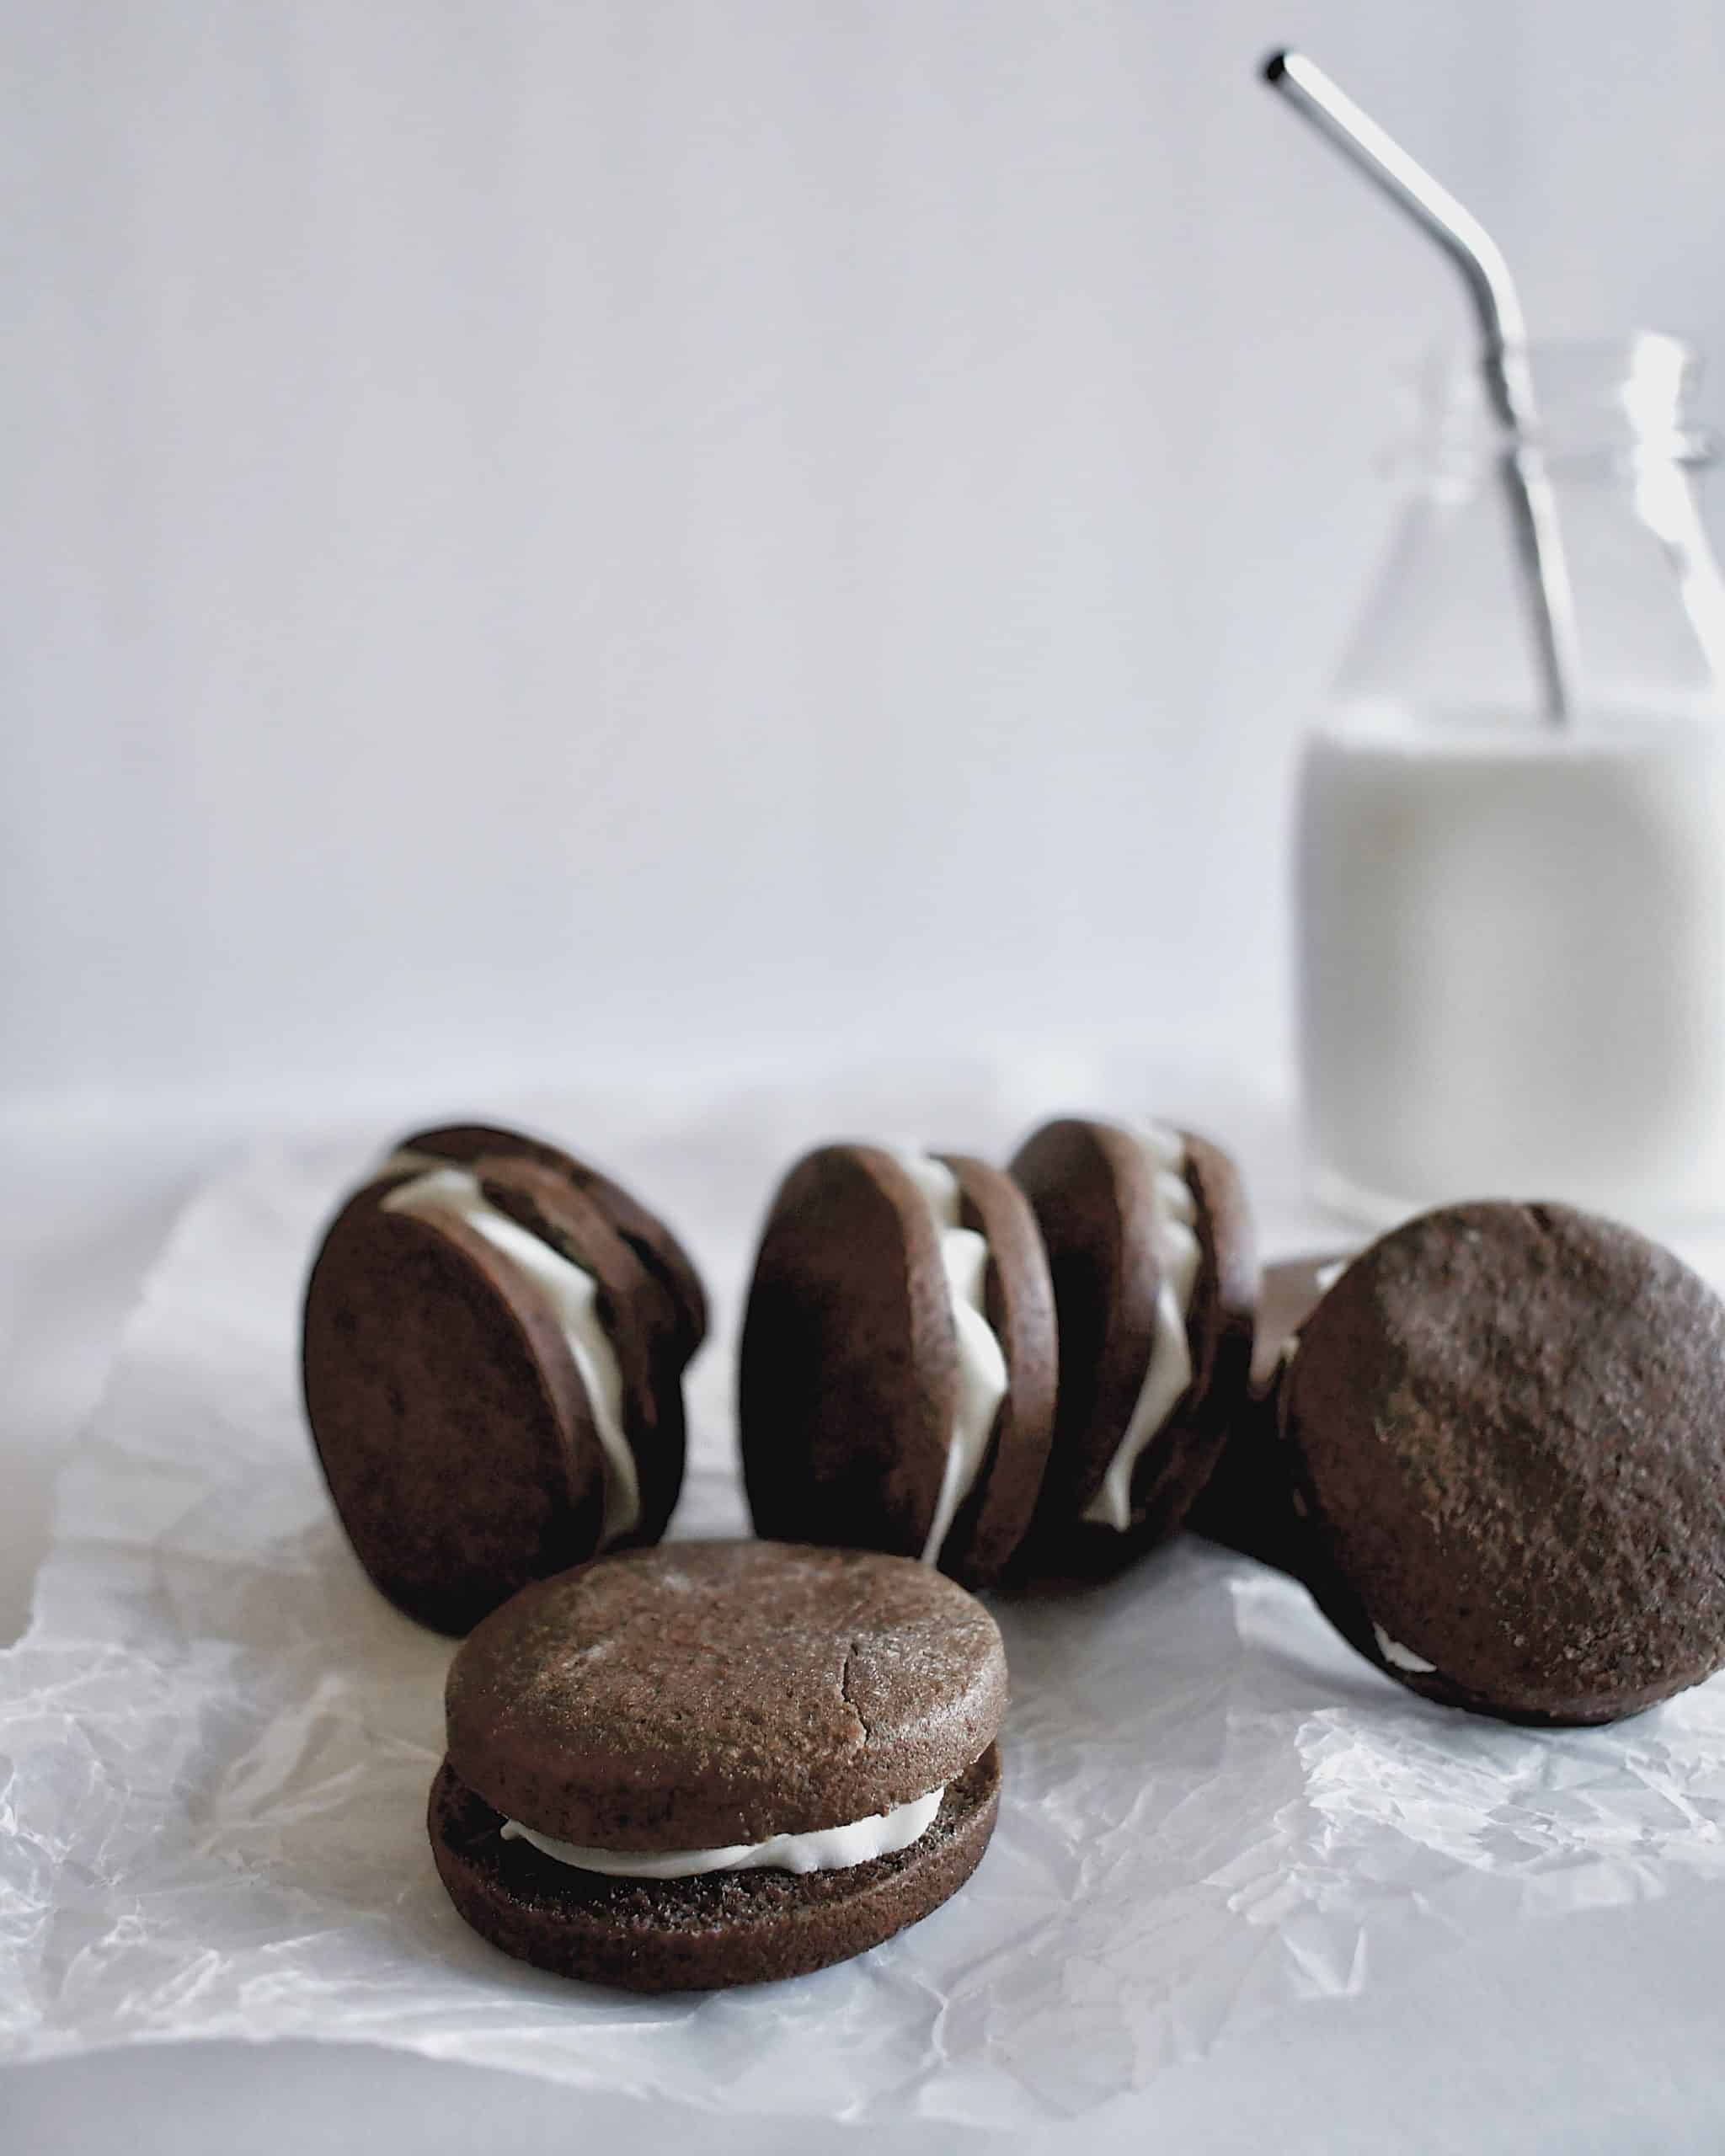 Homemade Oreo Style Cookies and milk.